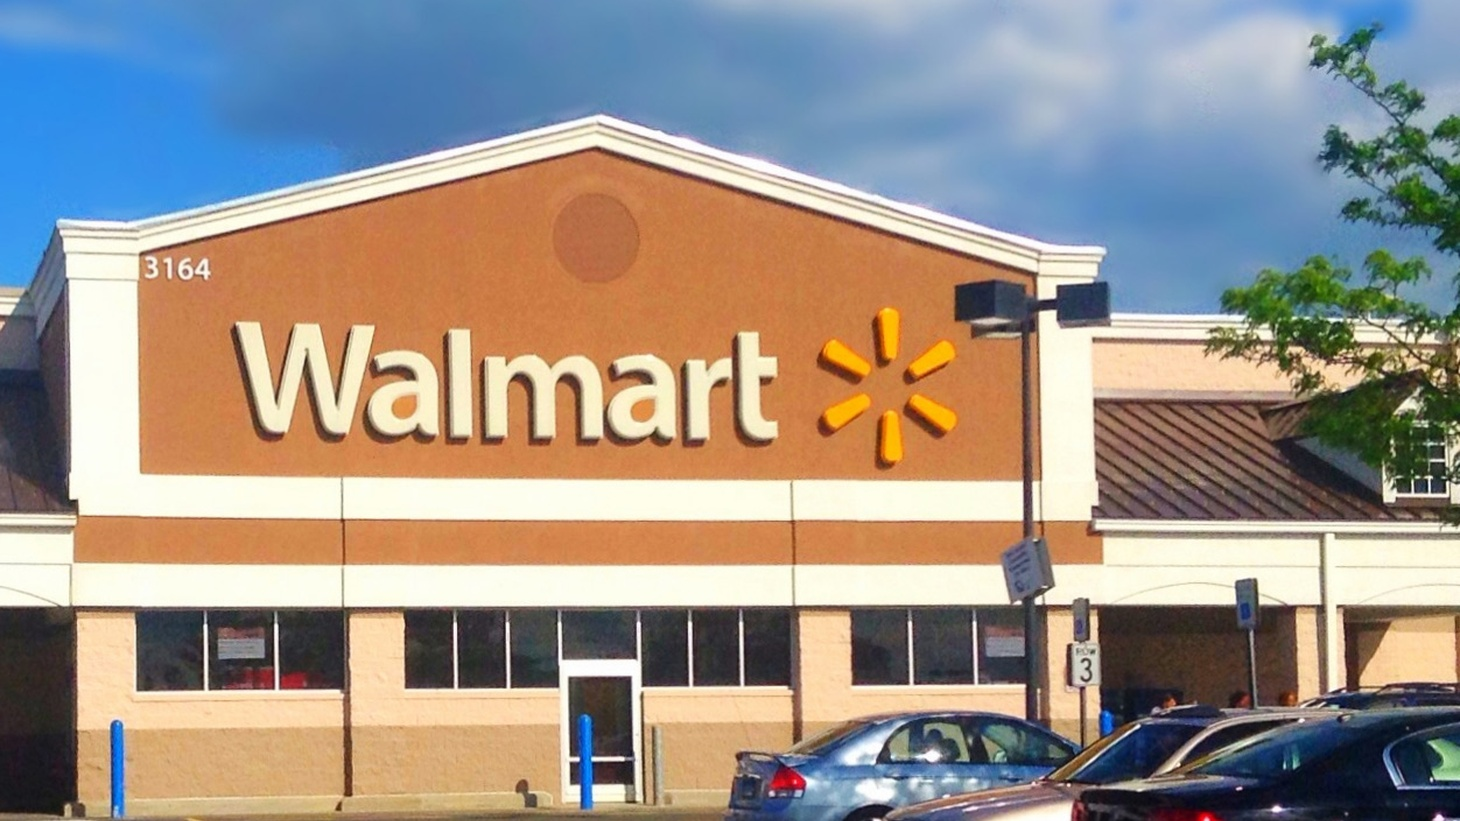 Walmart is increasing wages for its lowest paid workers, But $10 an hour is hardly enough to support a family. We hear about pressure for raises at other big companies as some cities and states increase their minimum wages.